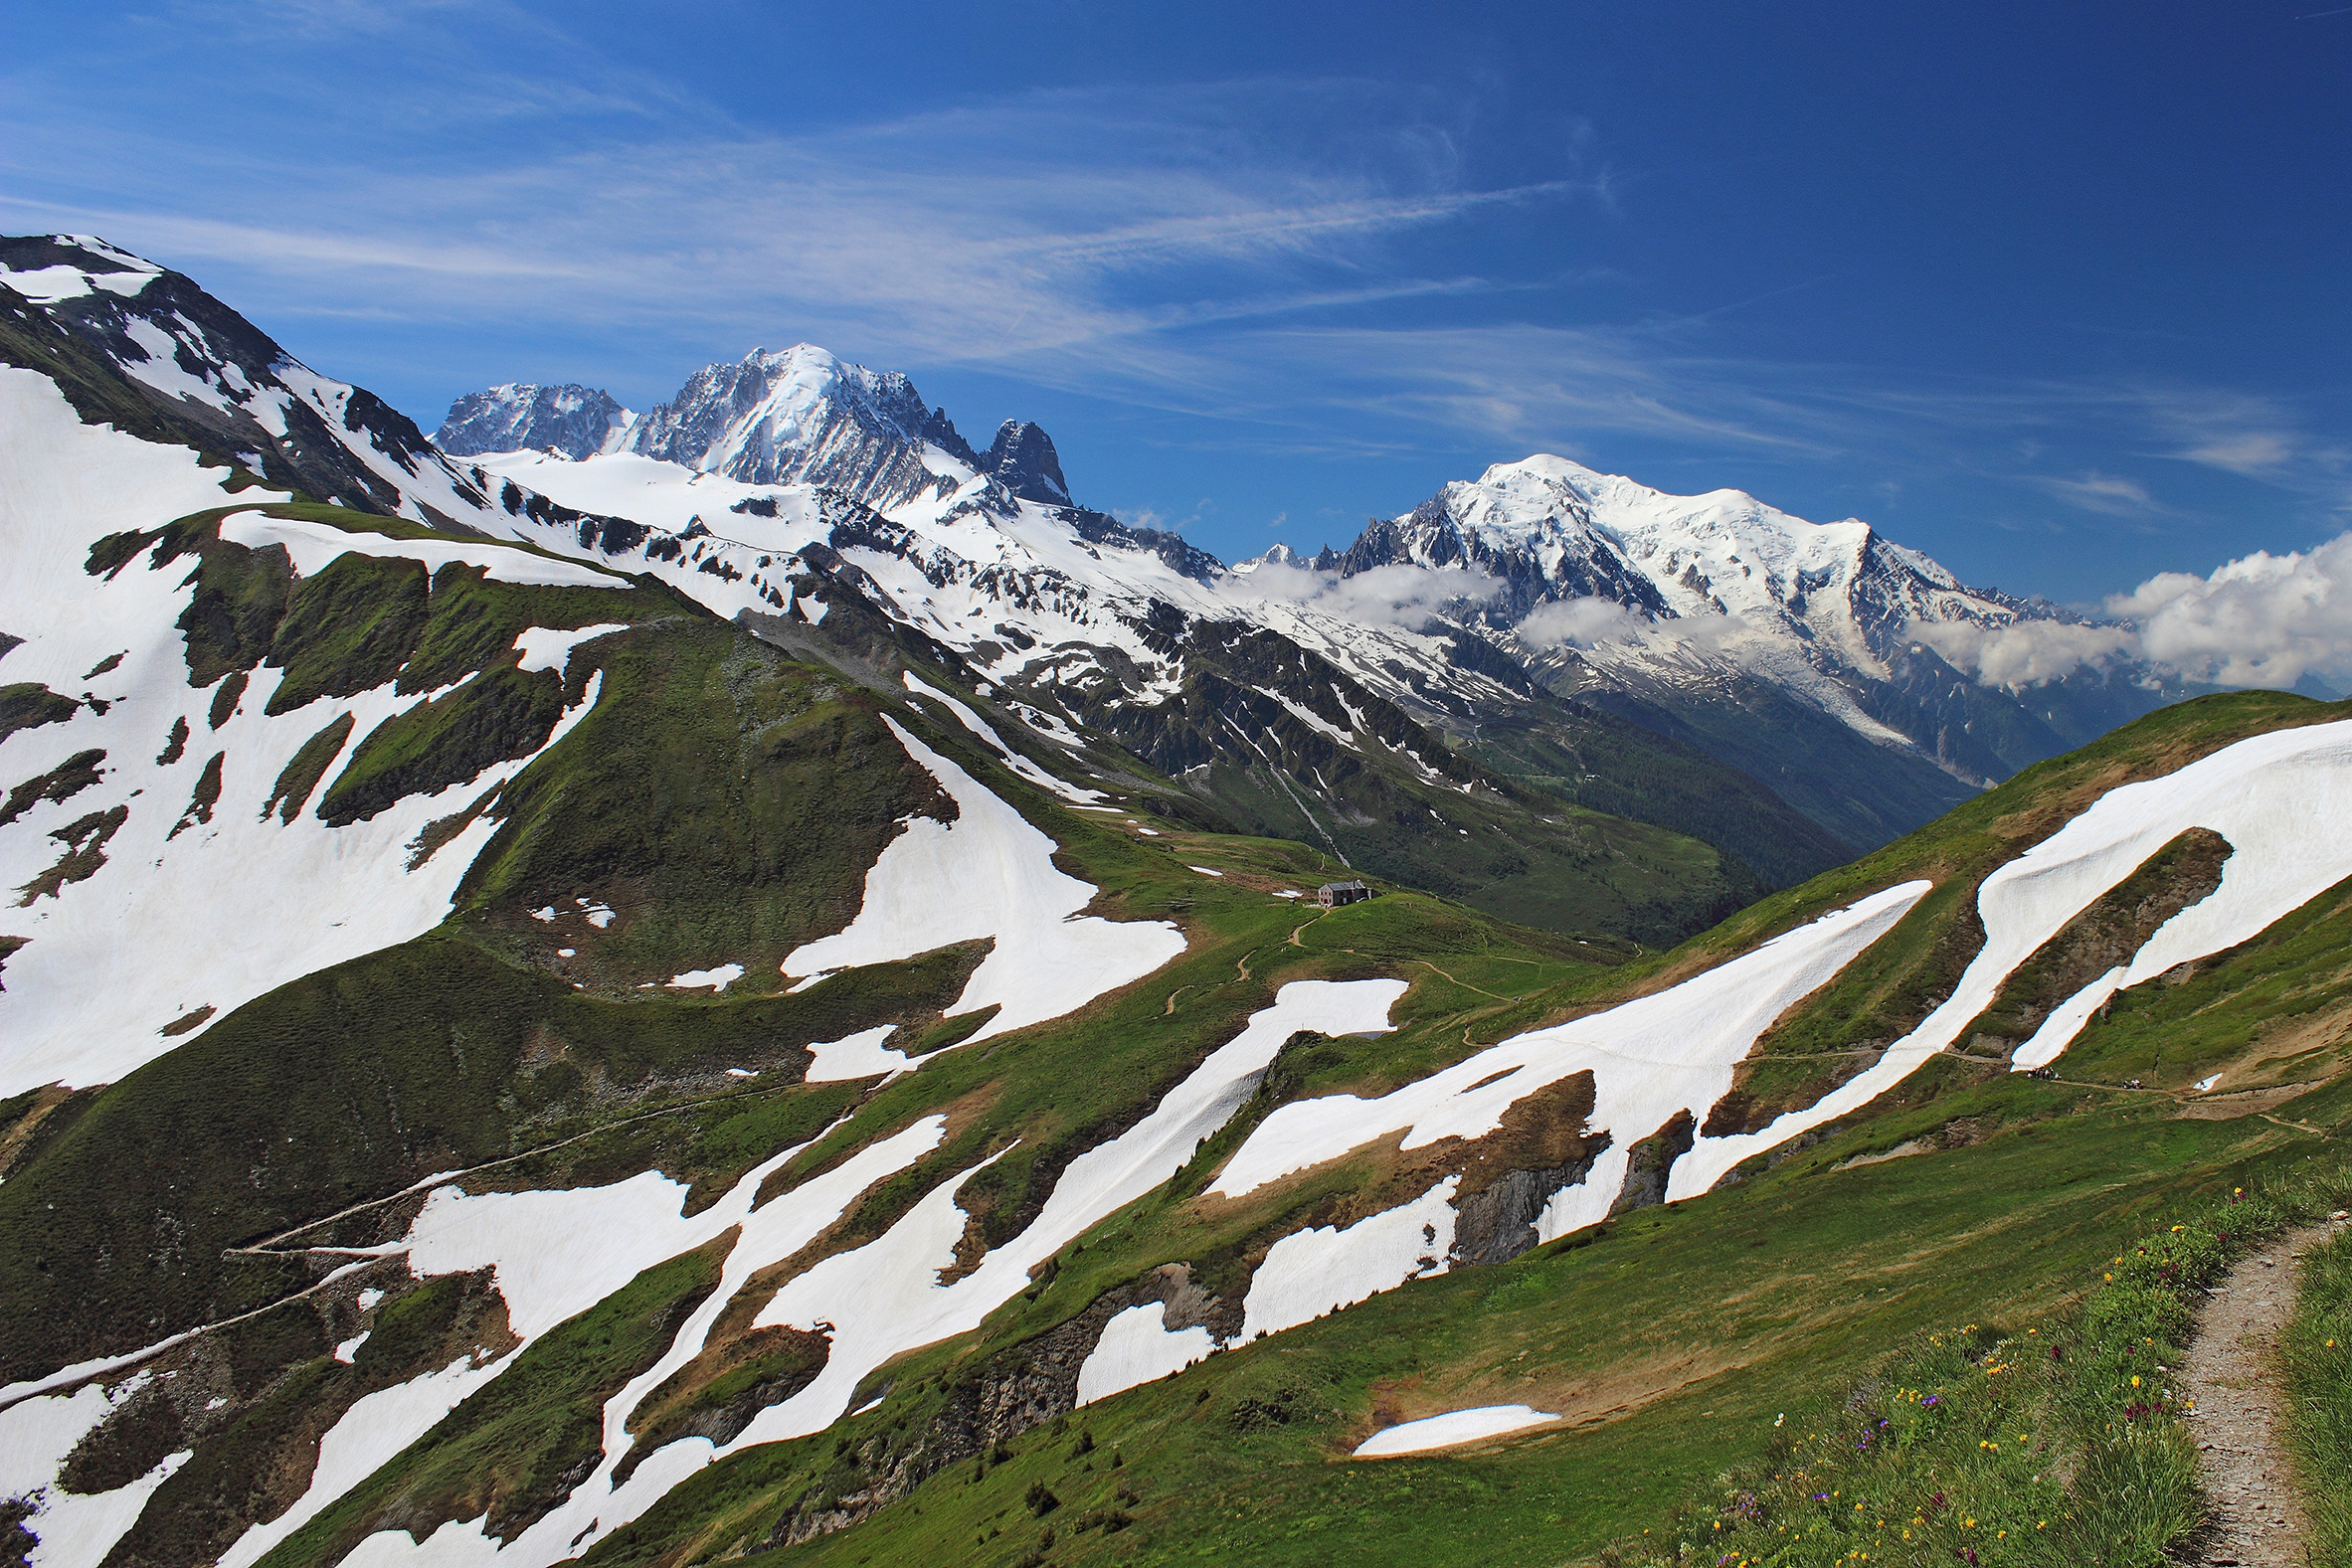 Landscape shot of Mont Blanc, France